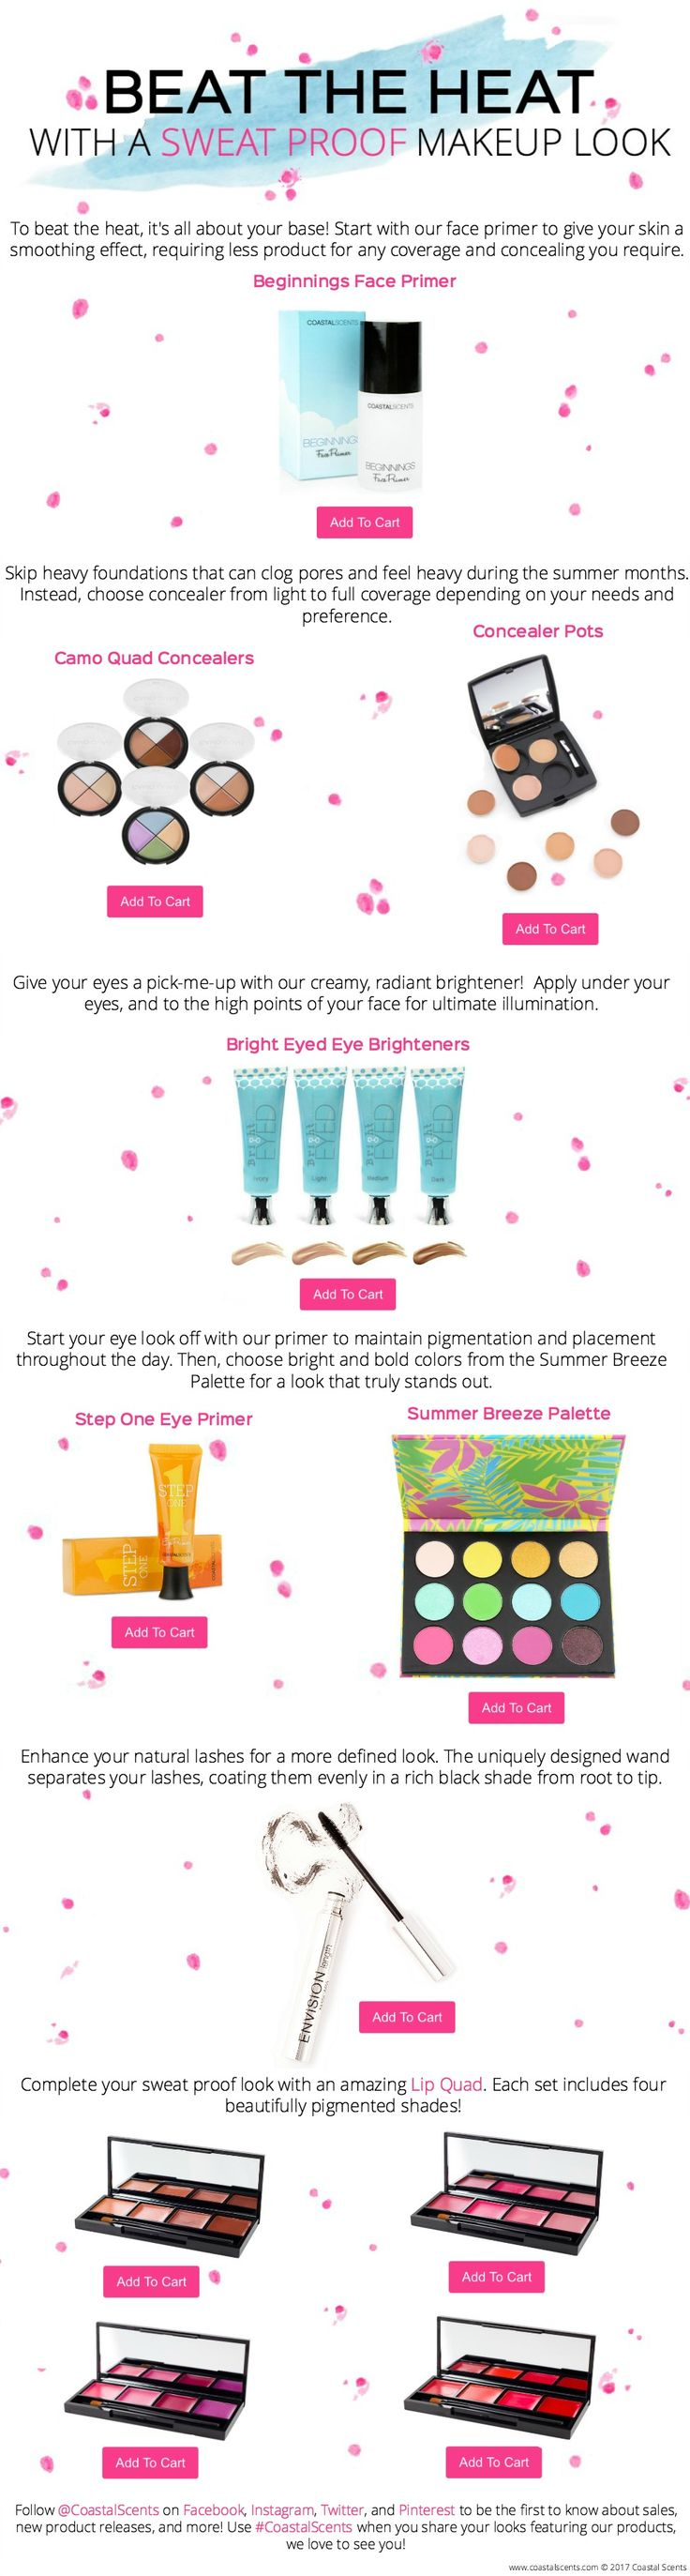 The weather may be warming up, but that doesn't mean your makeup look has to! Many Coastal Scents products are perfect for hot and humid conditions. For a look that stays in place all day long, while keeping you looking your best, check out the makeup below! Then, share your look featuring our products using #CoastalScents, we love to see you!